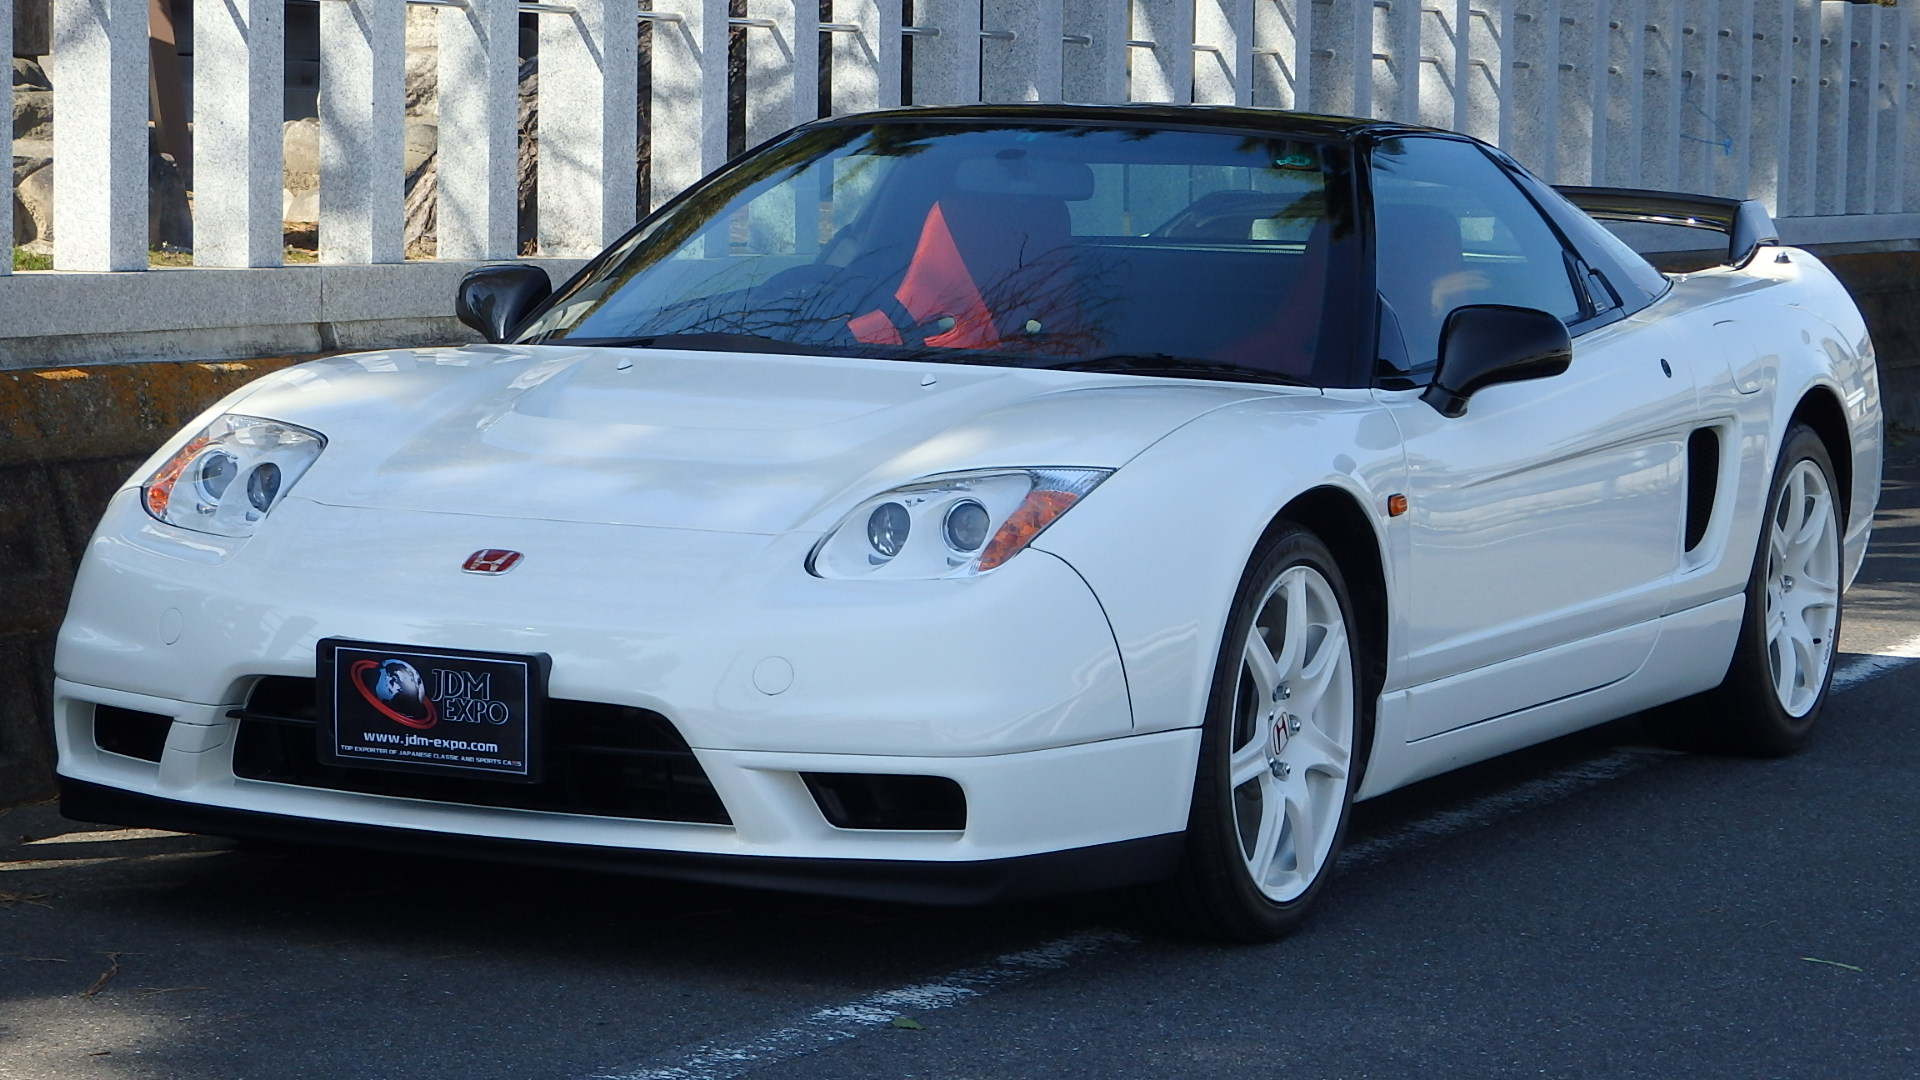 Honda NSX Type R for sale @JDM EXPO